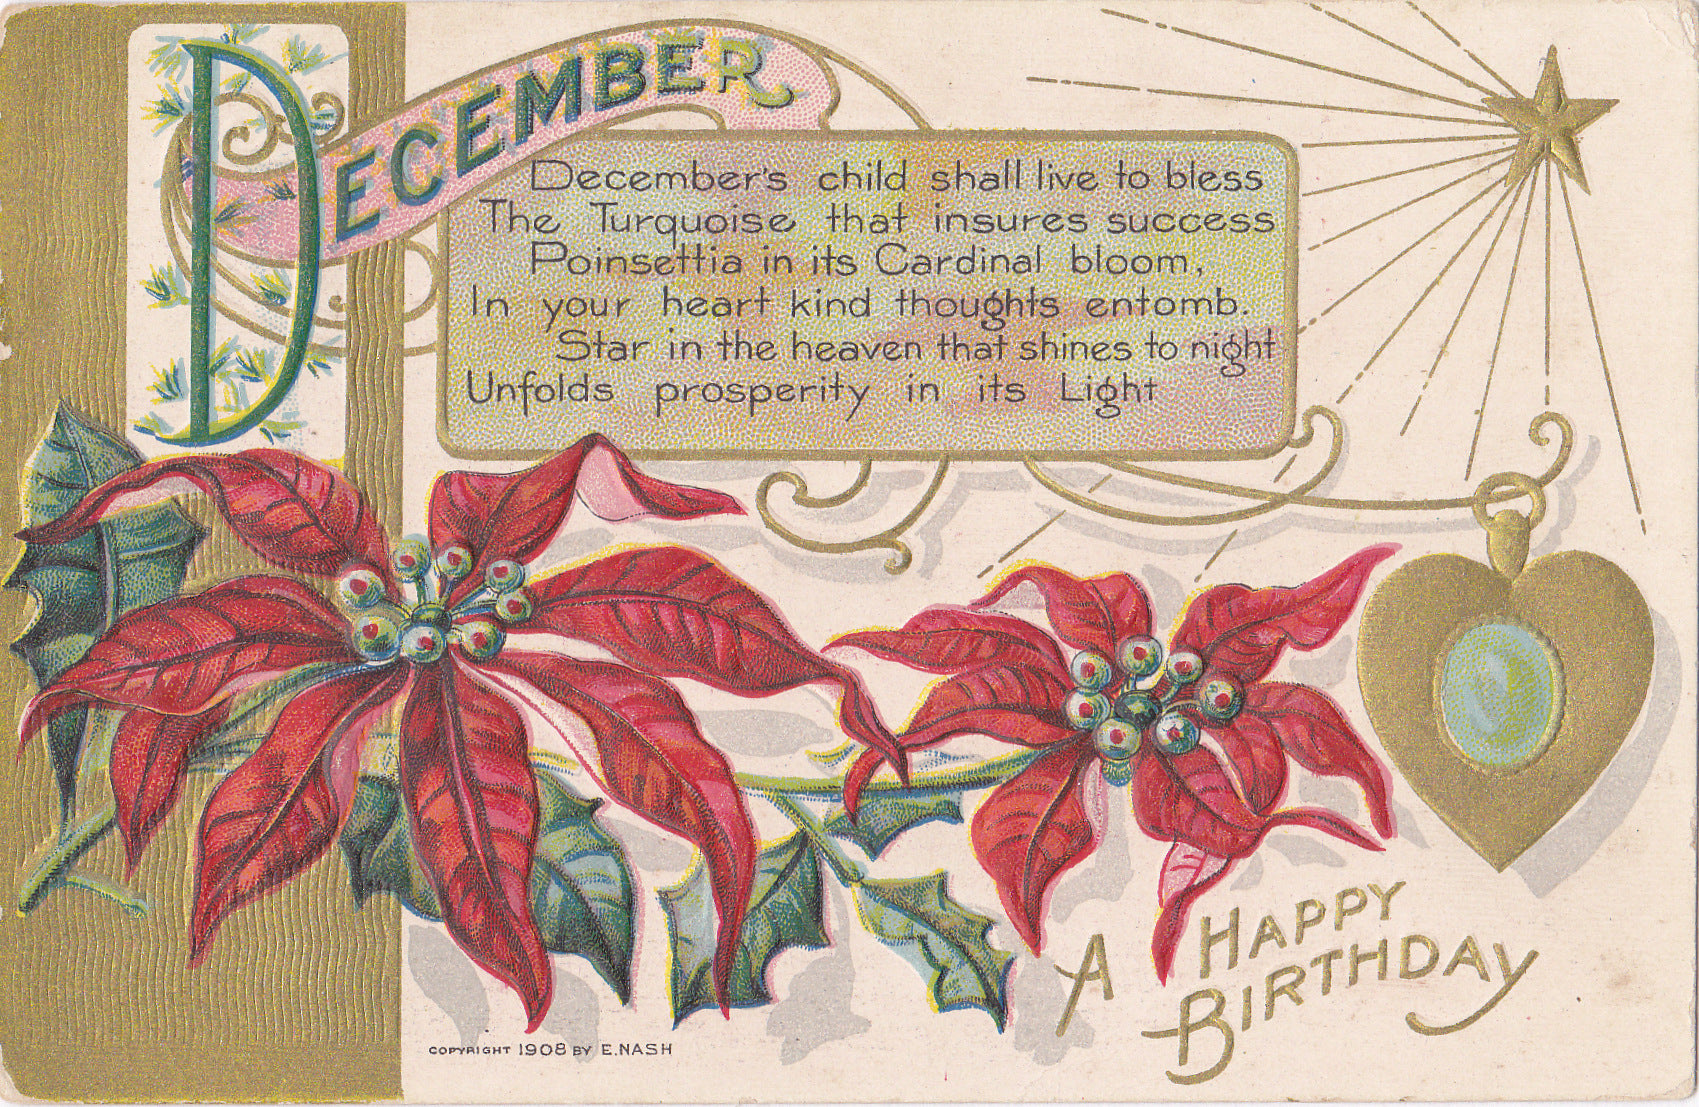 Decembers child 1900s antique postcard edwardian christmas decembers child 1900s antique postcard edwardian christmas birthday poinsettia flowers e nash used izmirmasajfo